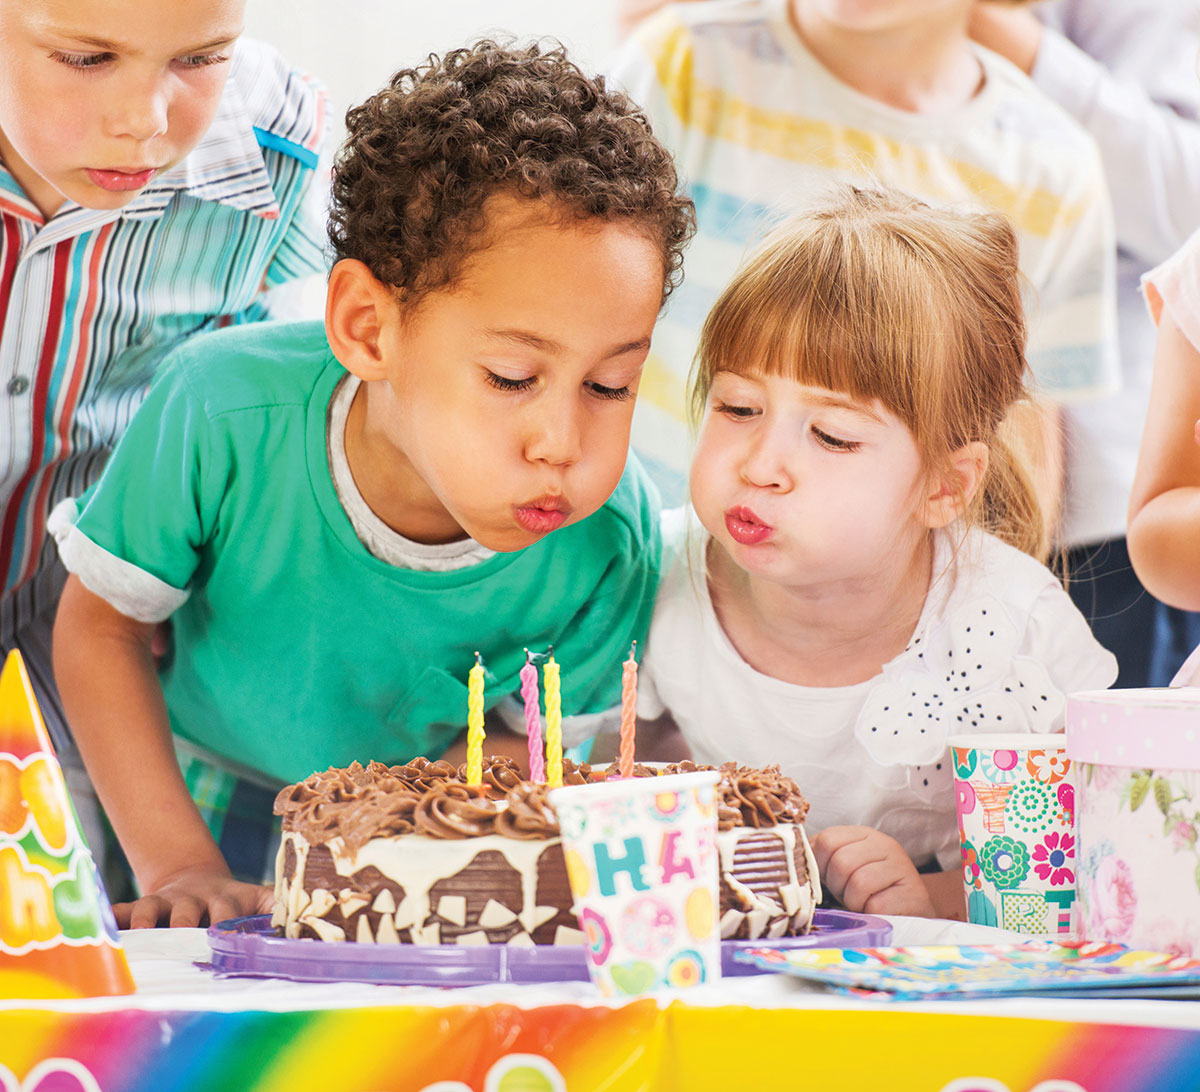 5 Things to Consider When Planning a Kids Birthday Party